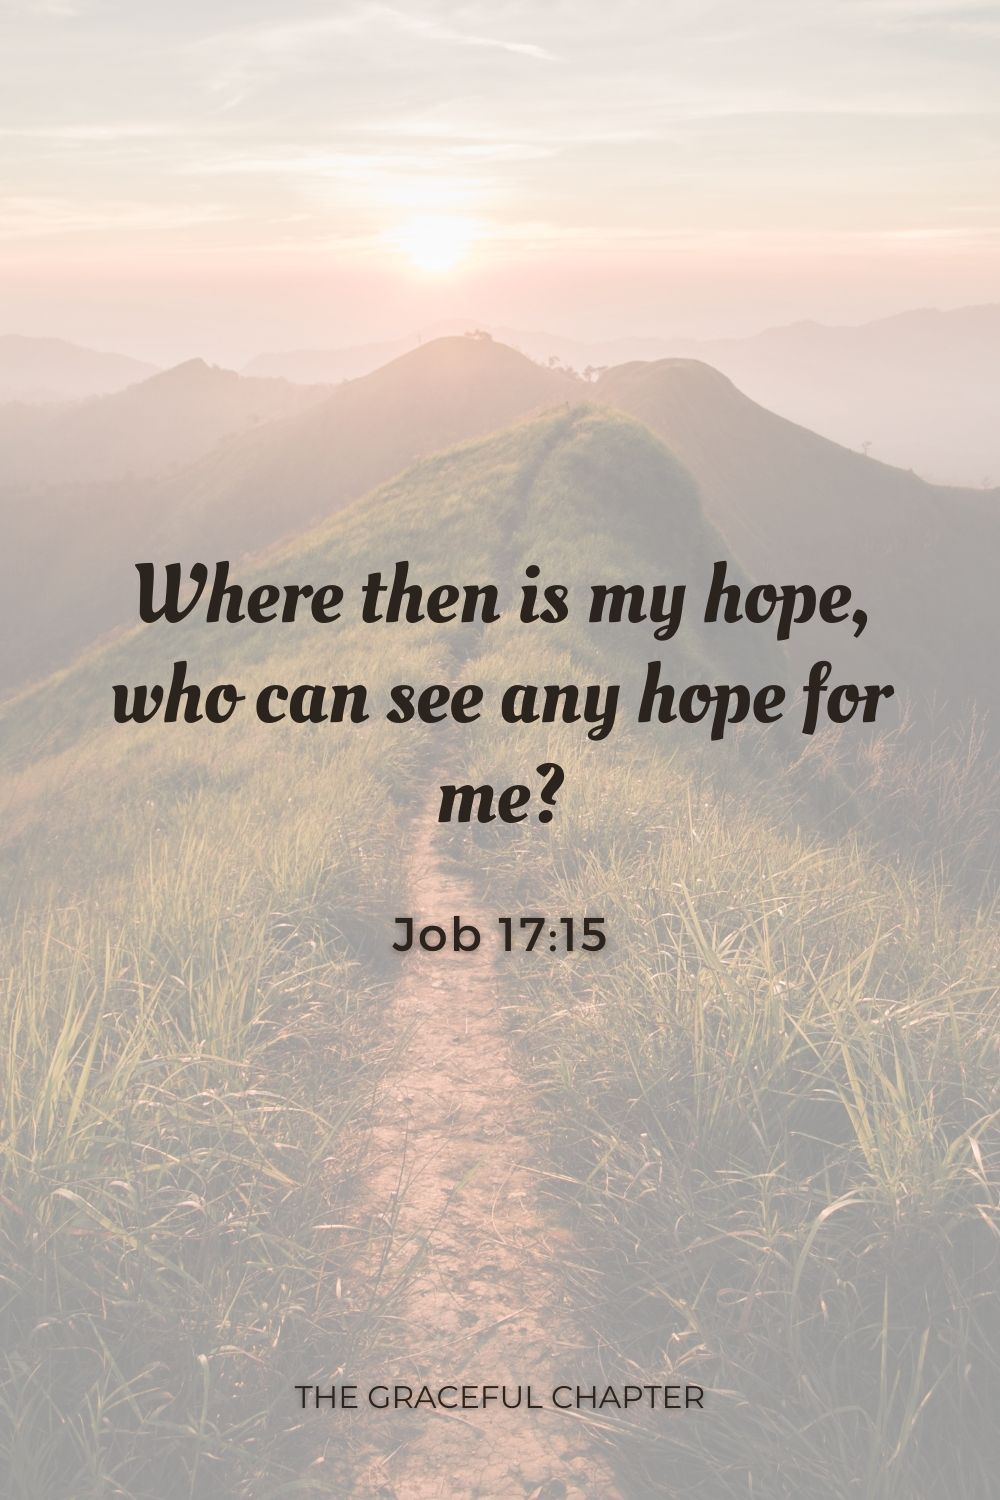 Where then is my hope, who can see any hope for me? Job 17:15